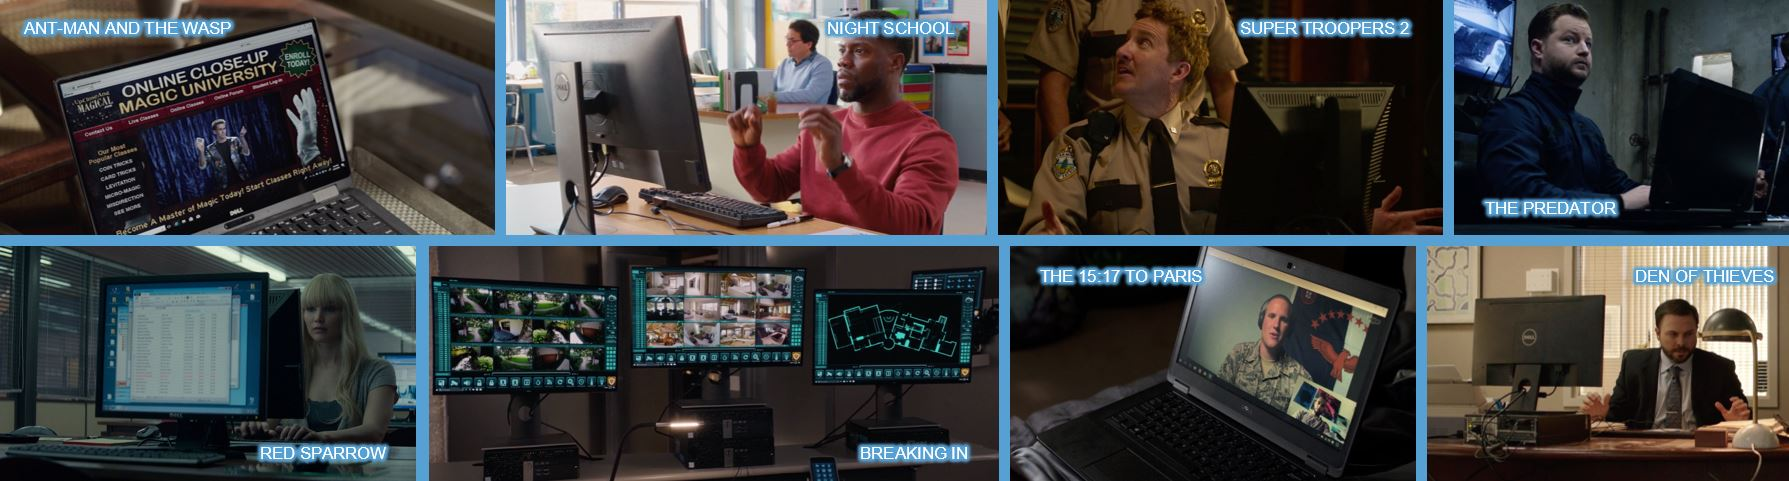 Dell concave brand tracking product placement top 10 brands in 2018 movies branded entertainment brand integration ant-man and the wasp night school super troopers 2 the predator breaking in red sparrow den of thieves the 15 17 to paris